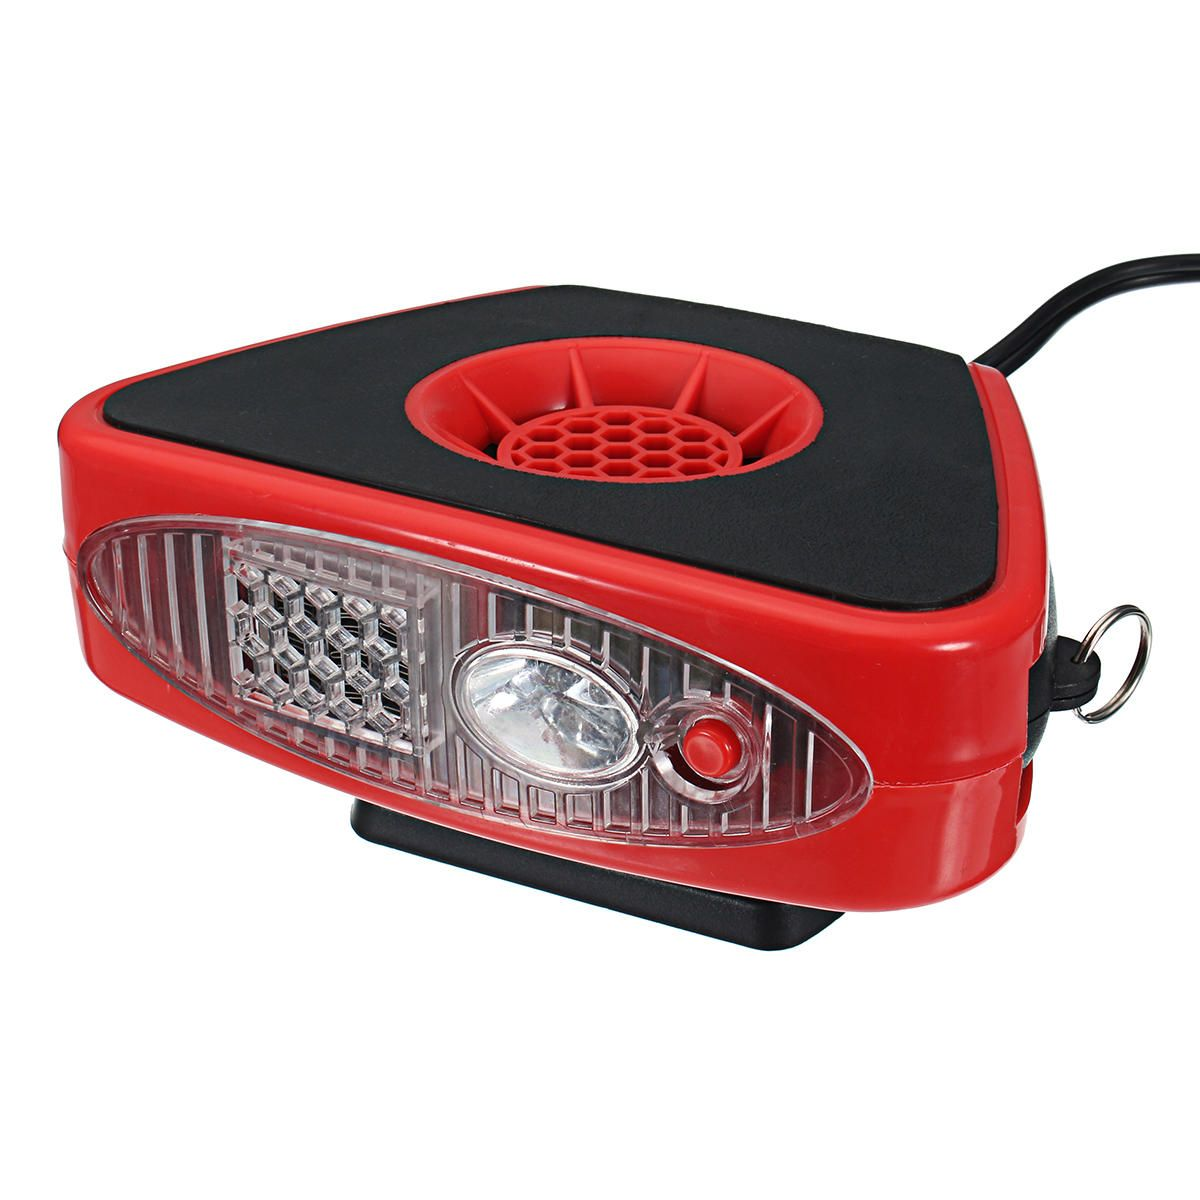 Us 19 56 12v 120w Car Portable Heater Heating Cooling Fan With